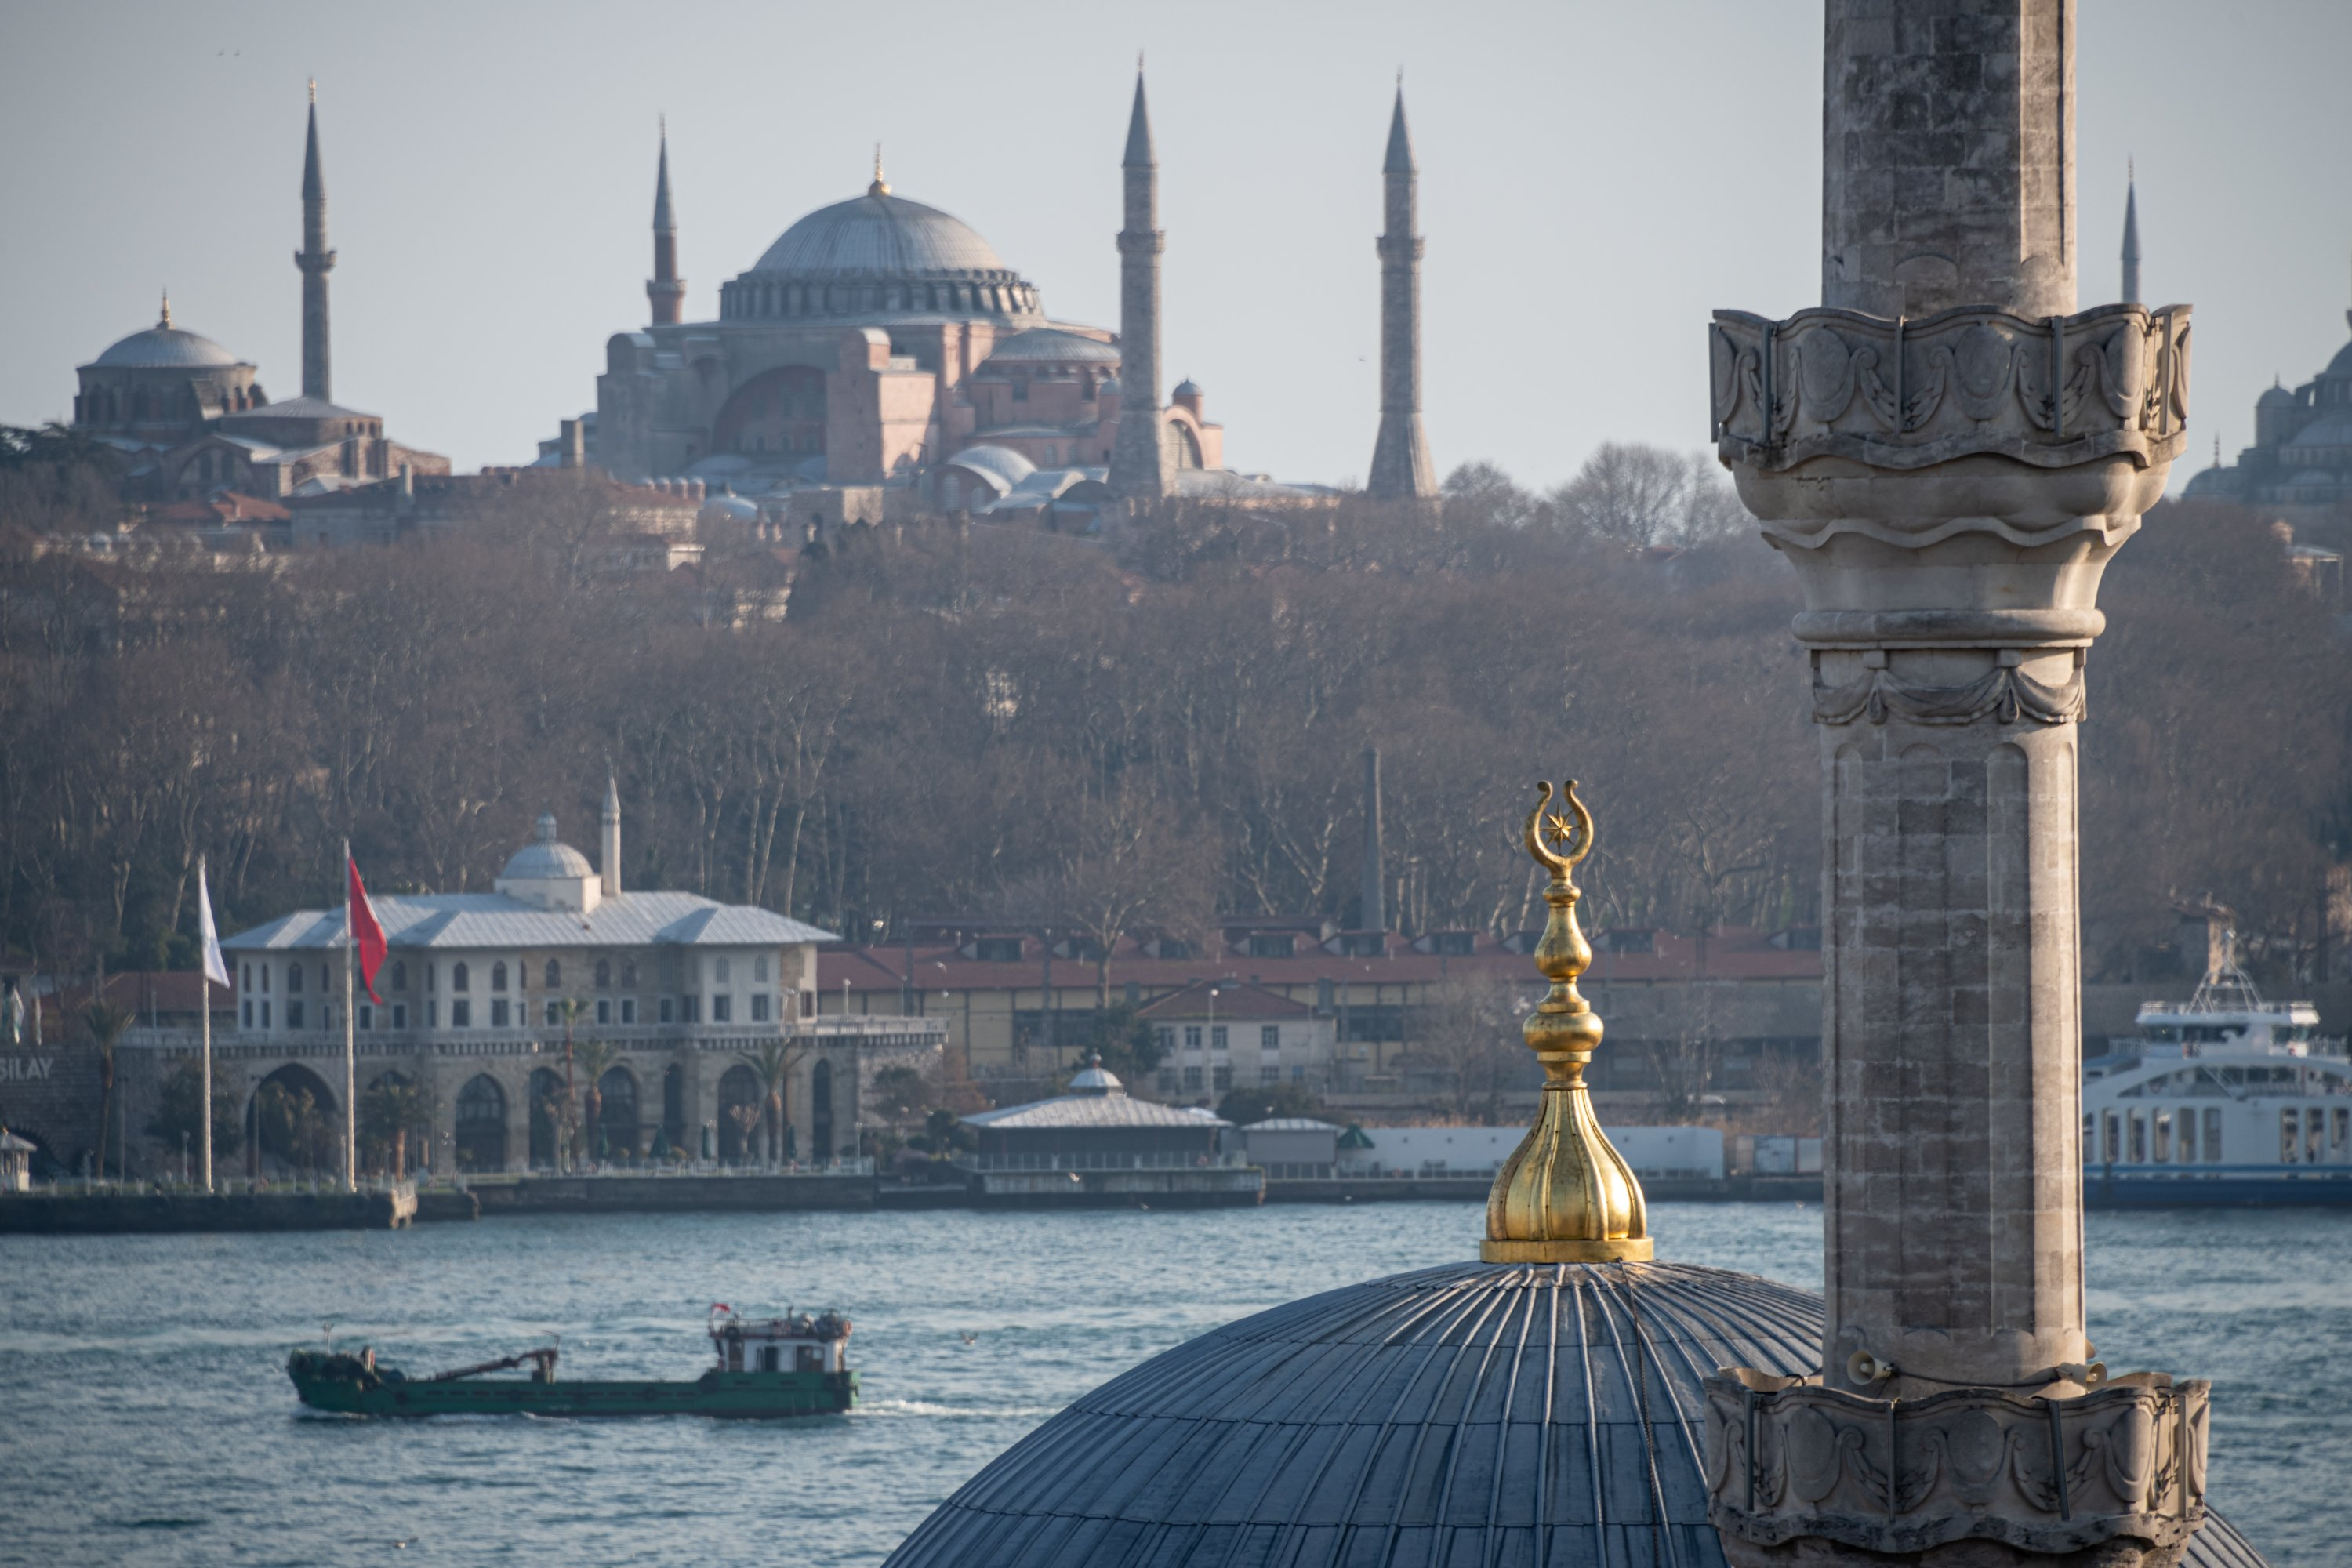 Common values, problems: Why Turkey, Arab world in row?